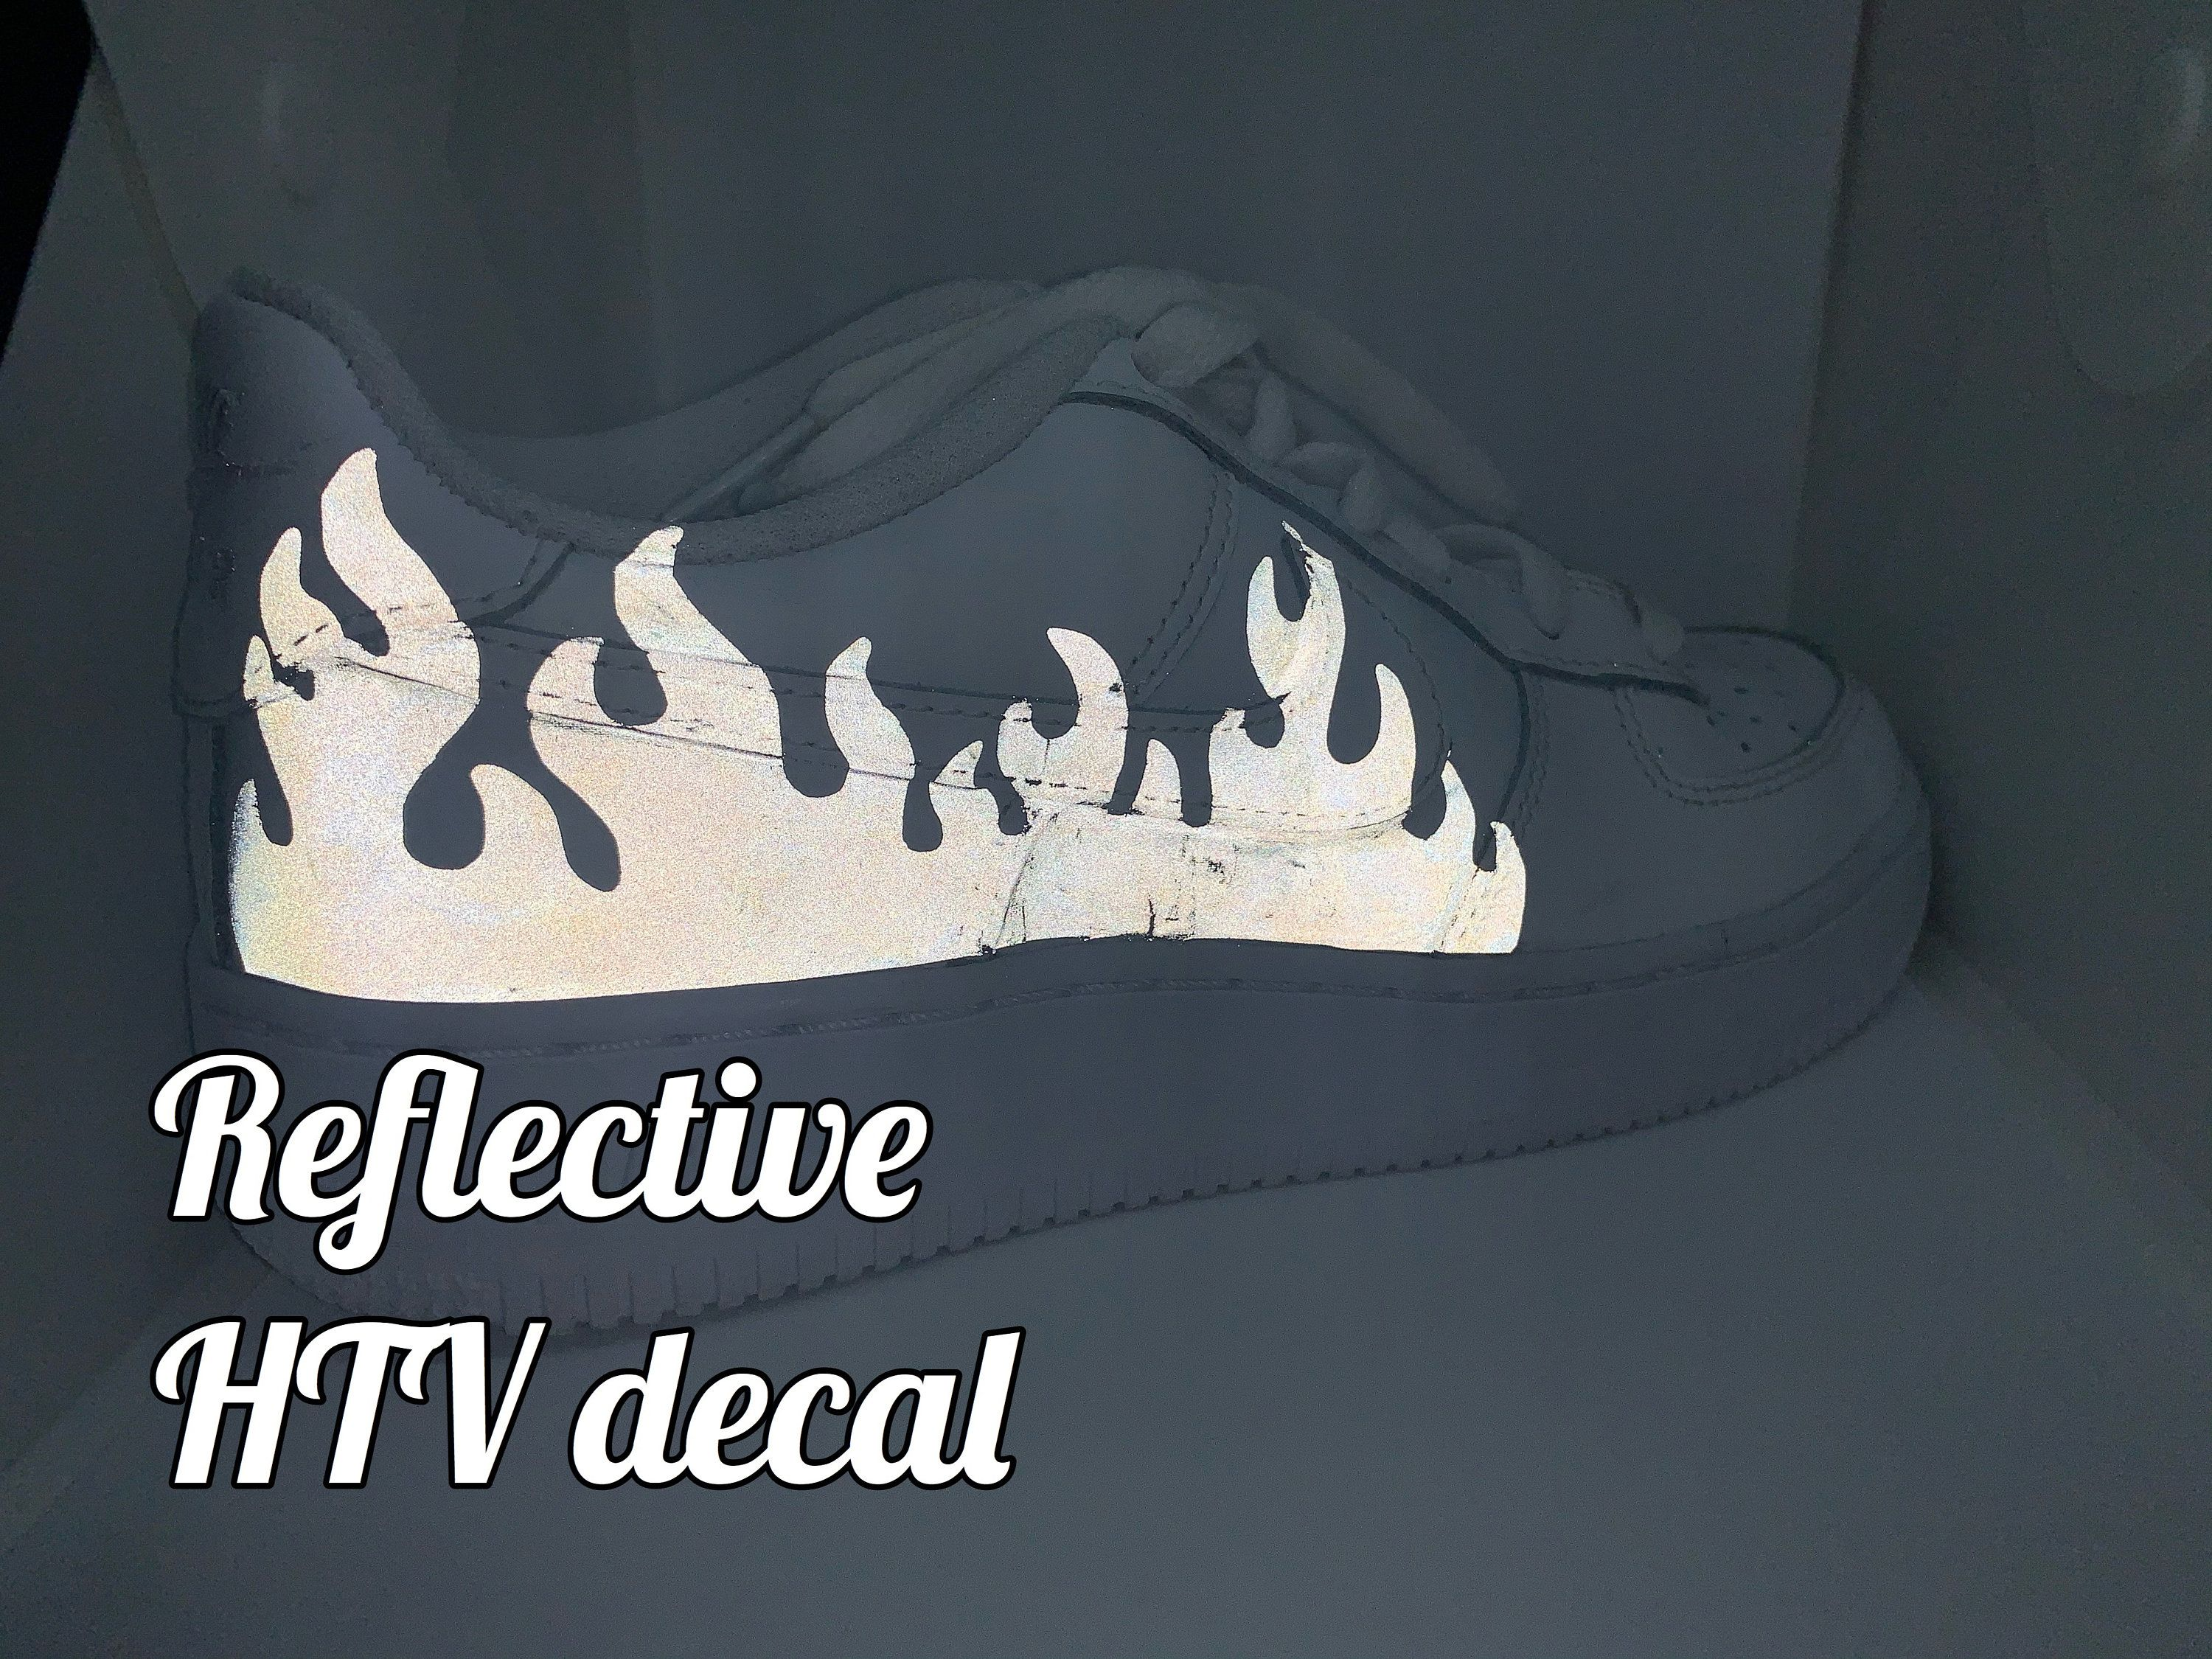 Flame heat transfer vinyl 3M reflective decal for Air